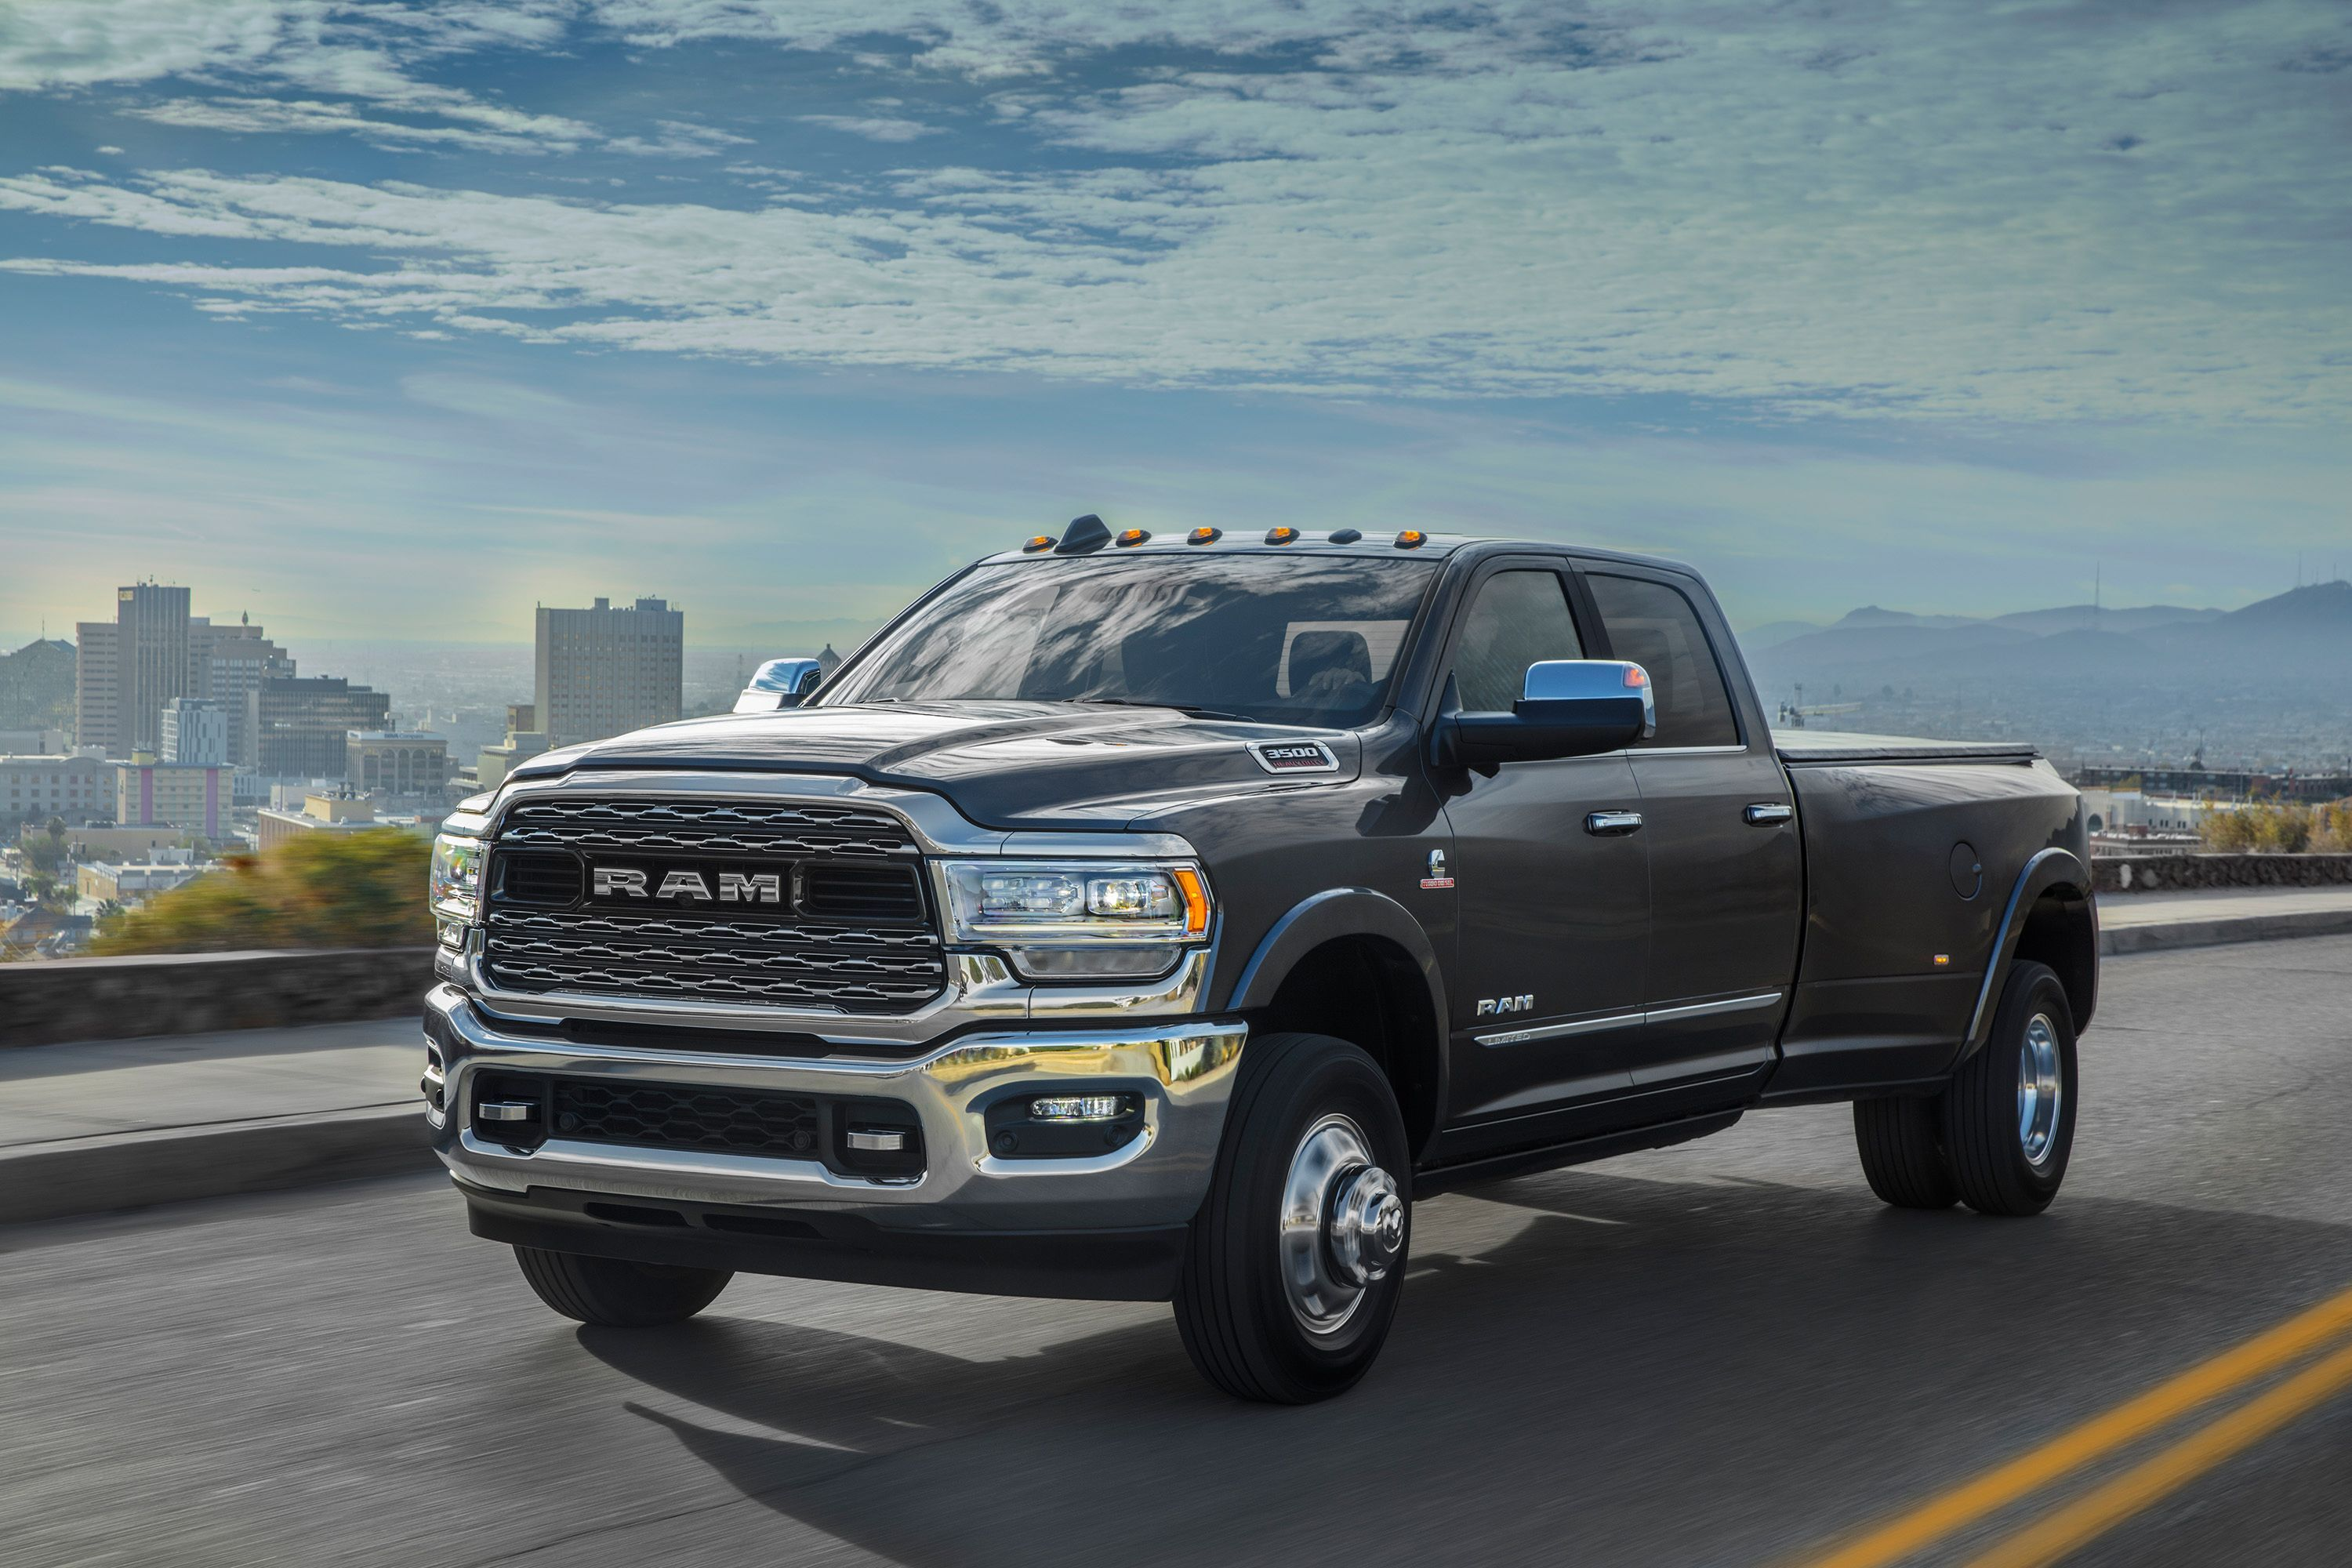 2020 Ram 3500 Diesel Price, Design and Review